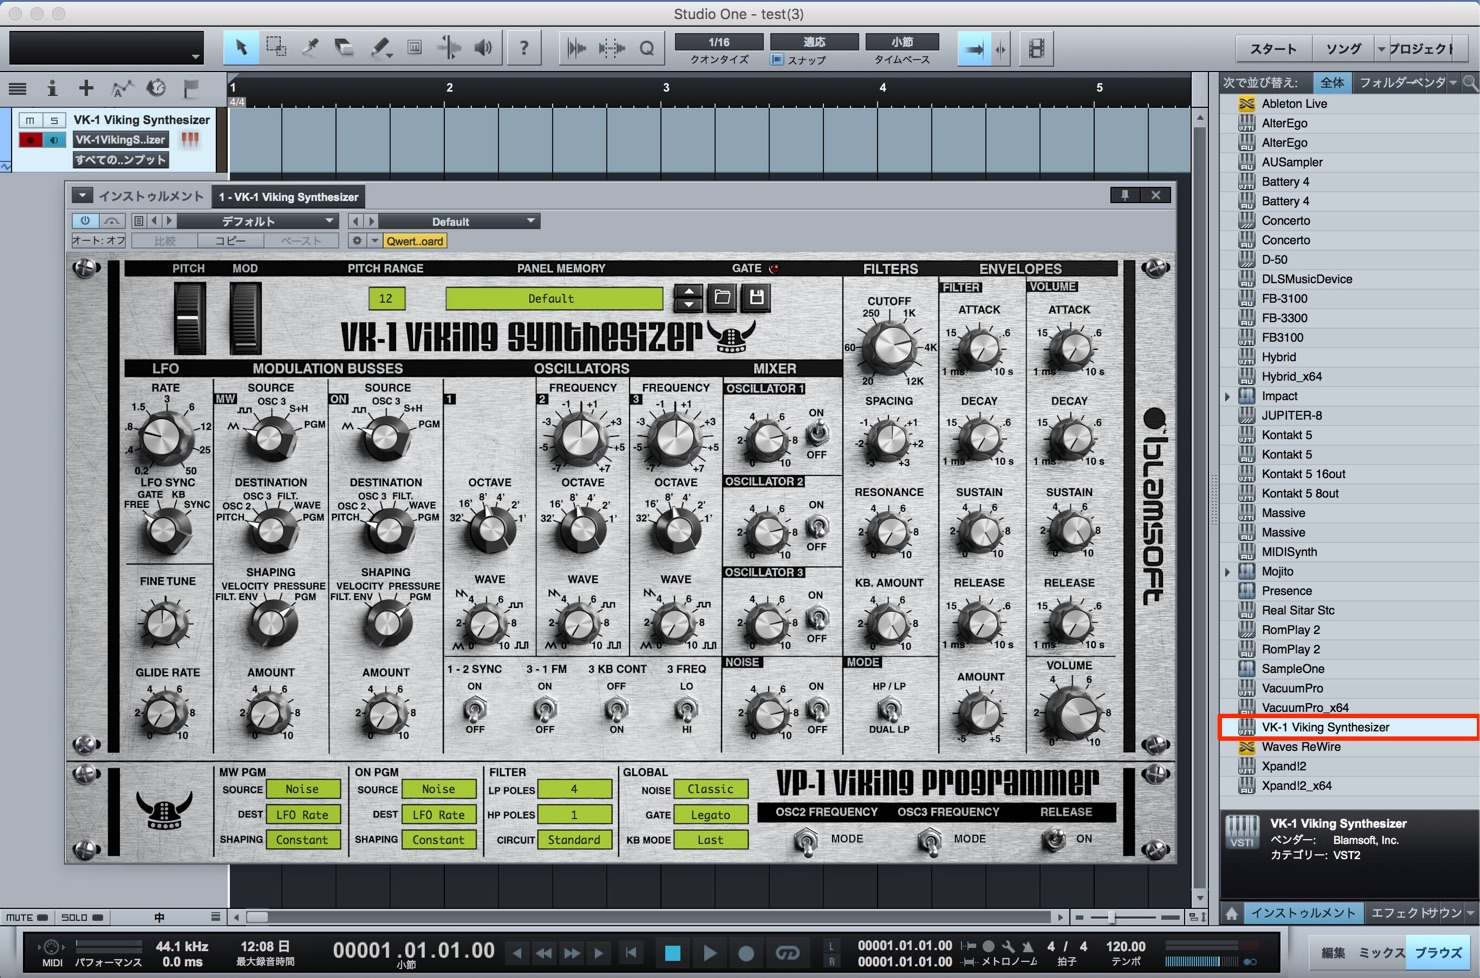 VK-1 Viking Synthesizer-Download-4-1